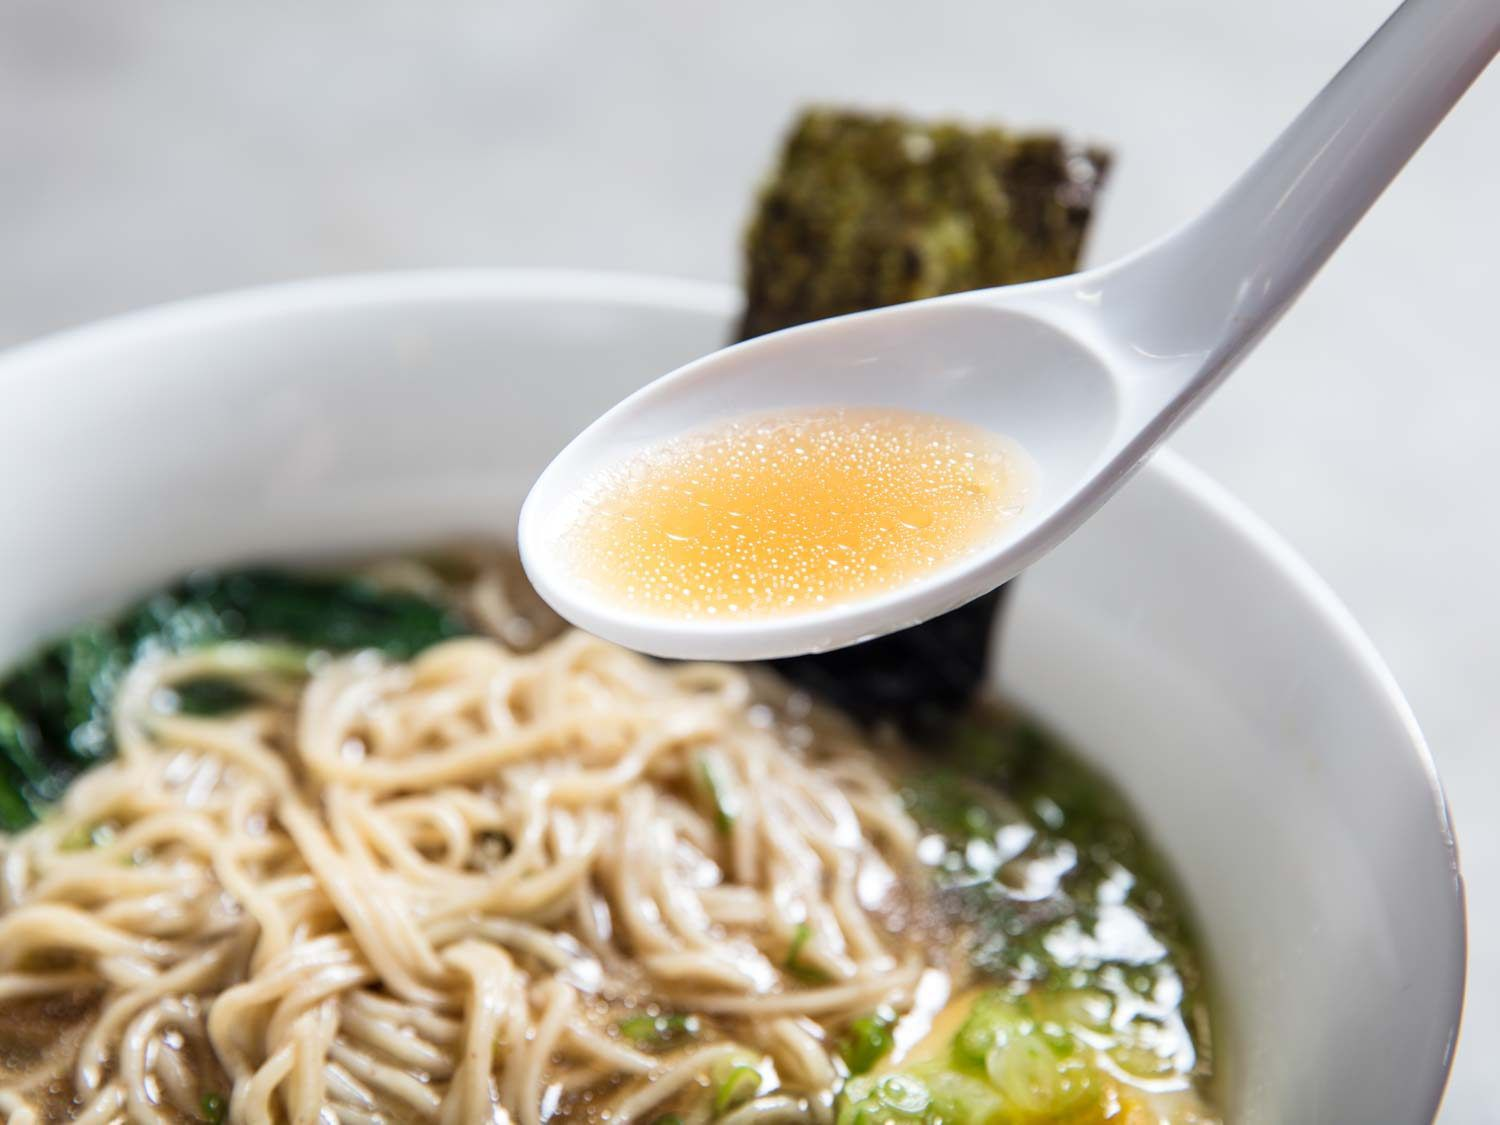 A spoonful of shoyu ramen broth being lifted from a bowl of broth and noodles